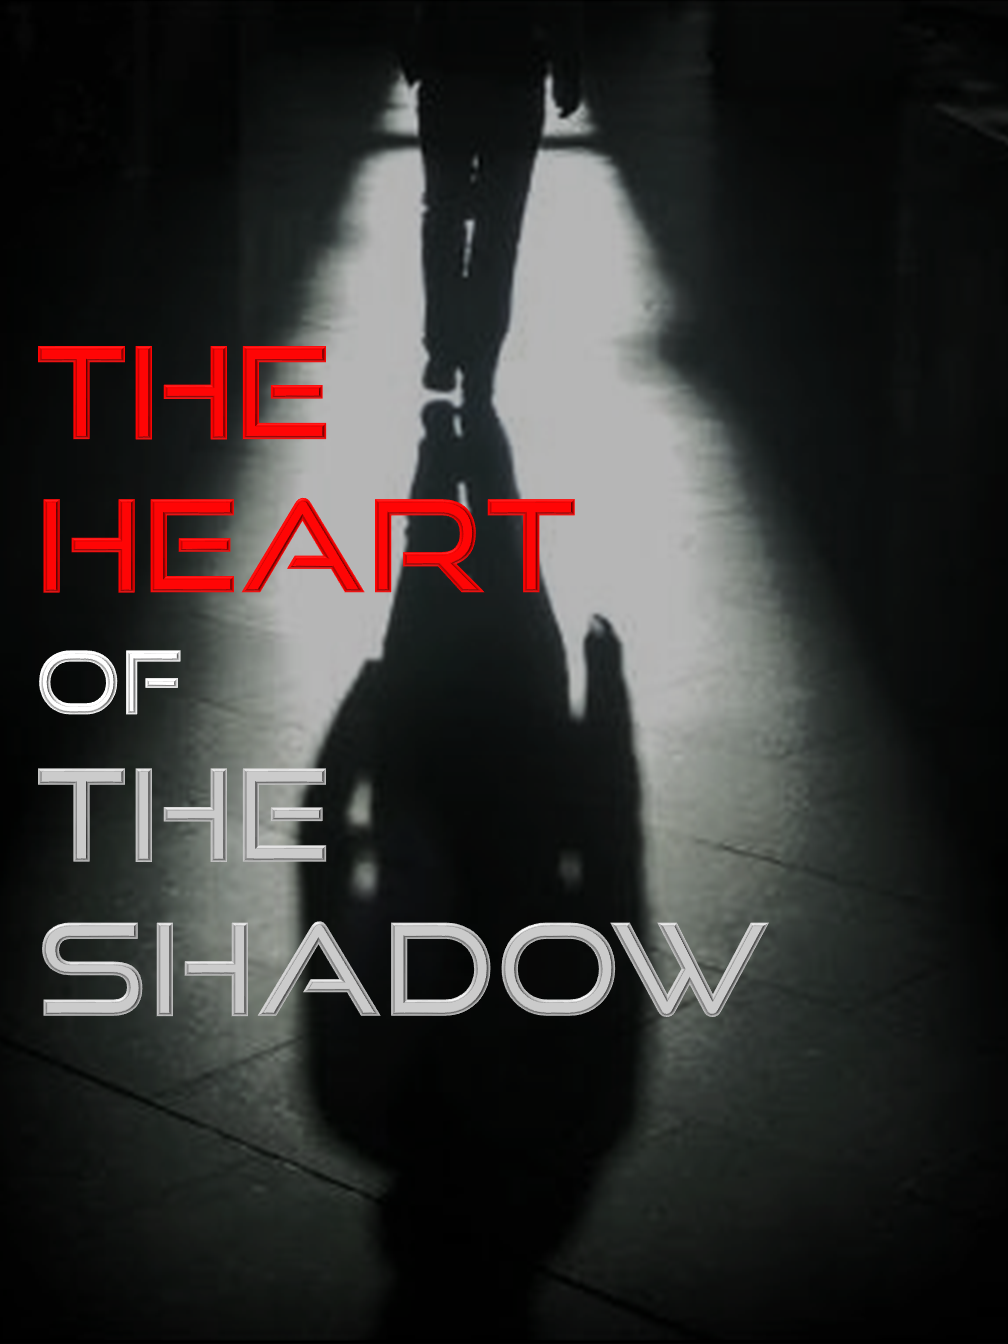 The Heart of the Shadow